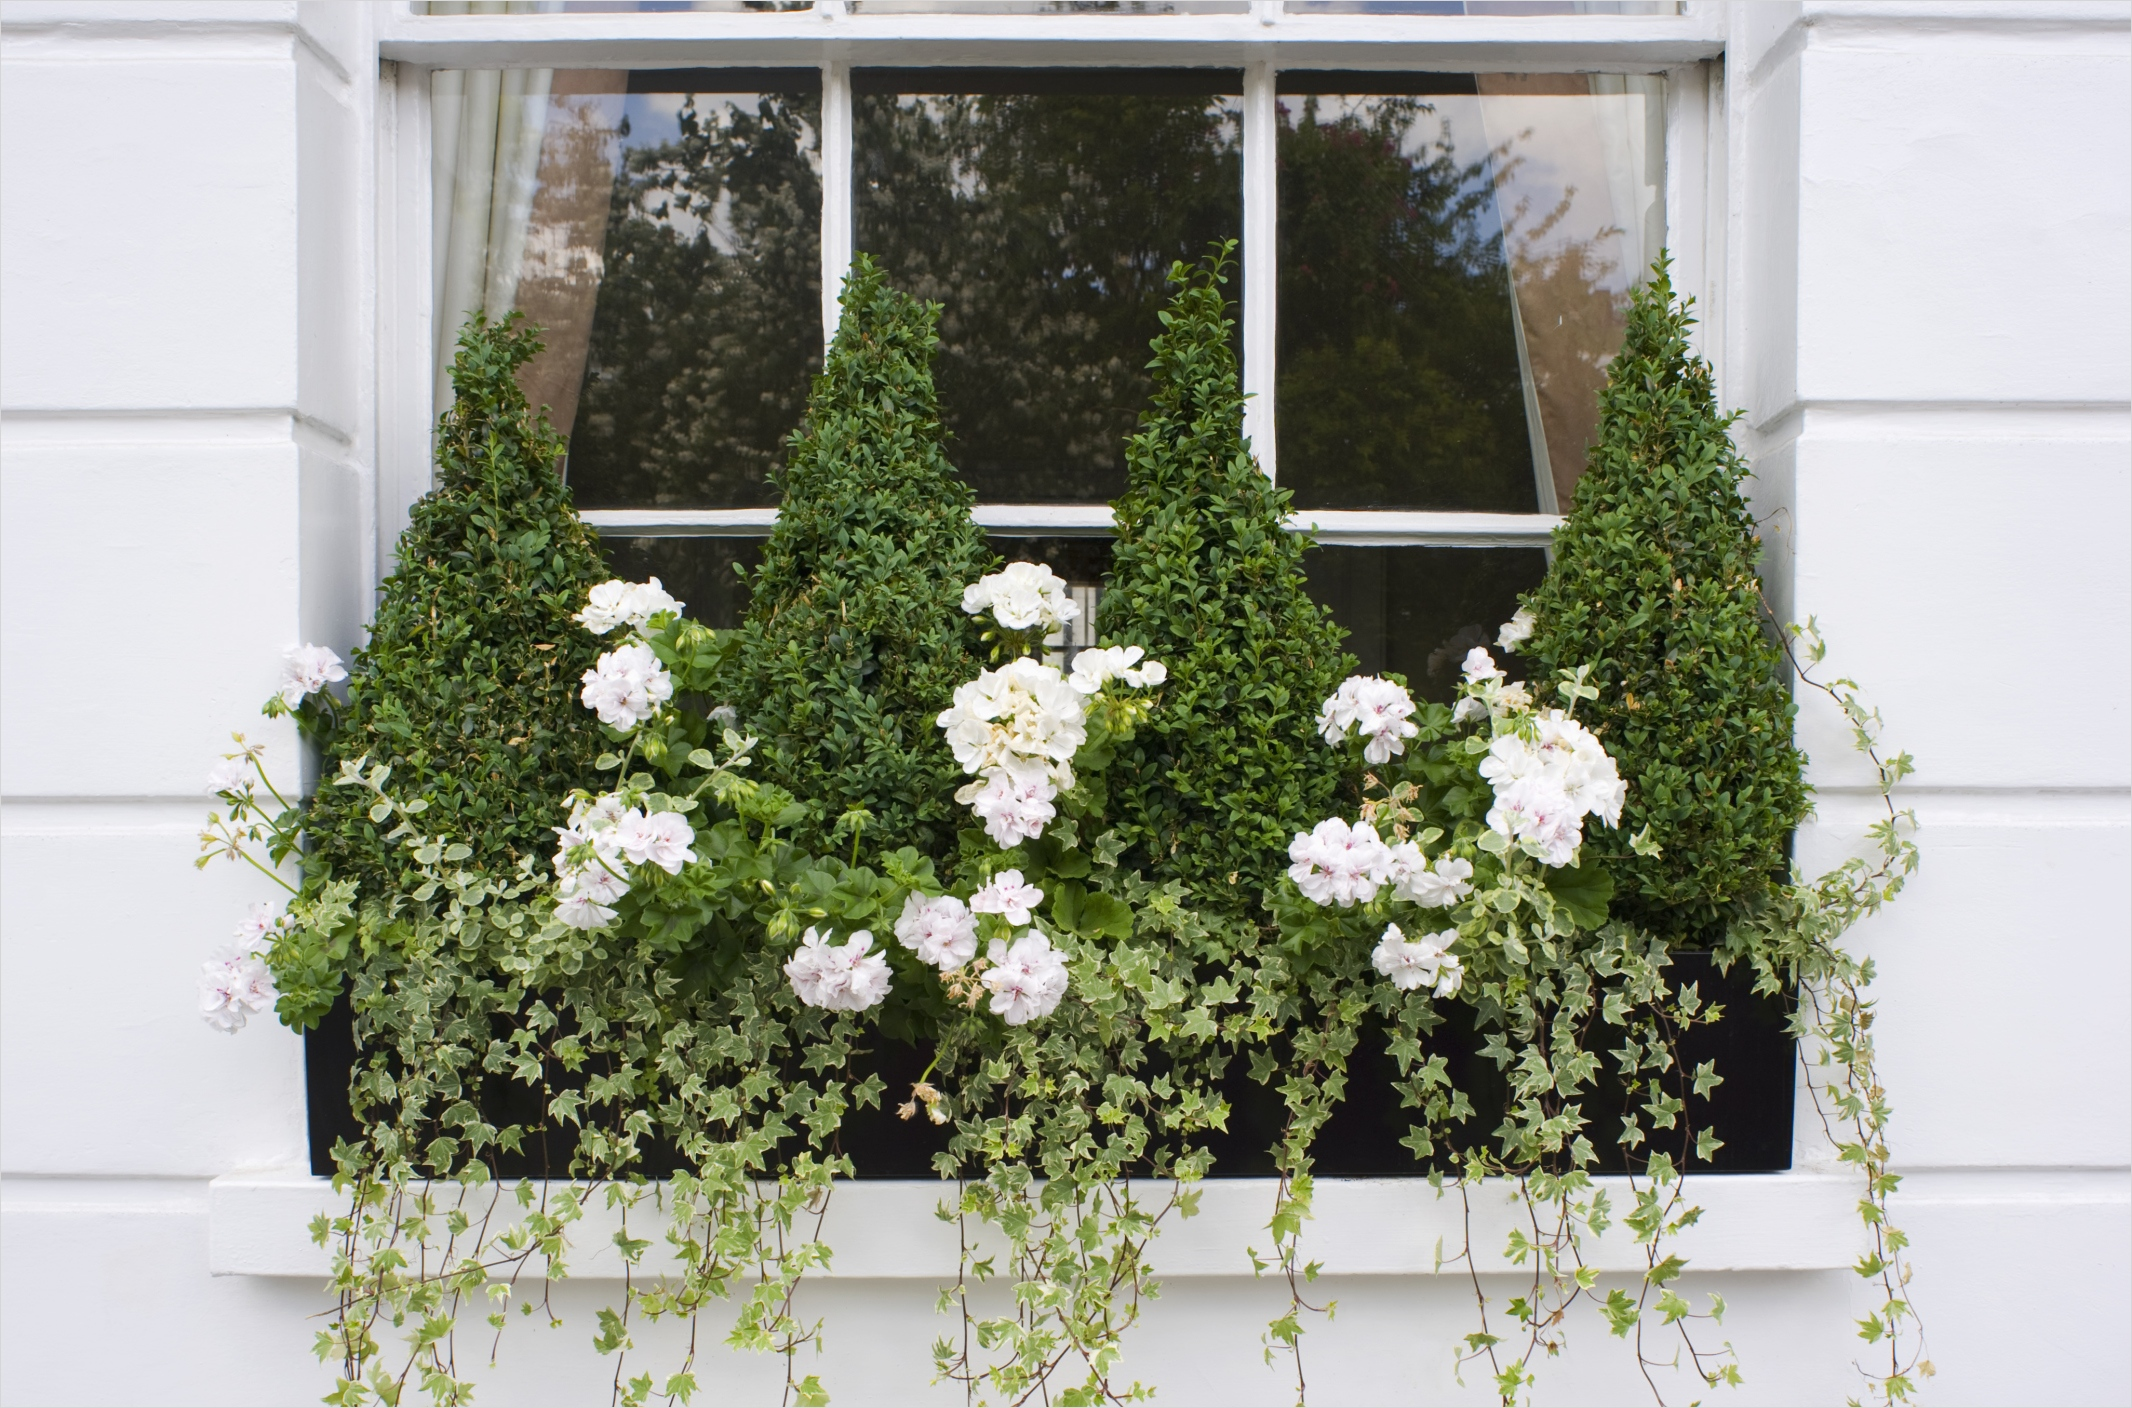 42 Best Flowers for Window Boxes 17 18 Fun Gardening Ideas for Your Window Boxes Window Box Flowers Tips and Ideas 1